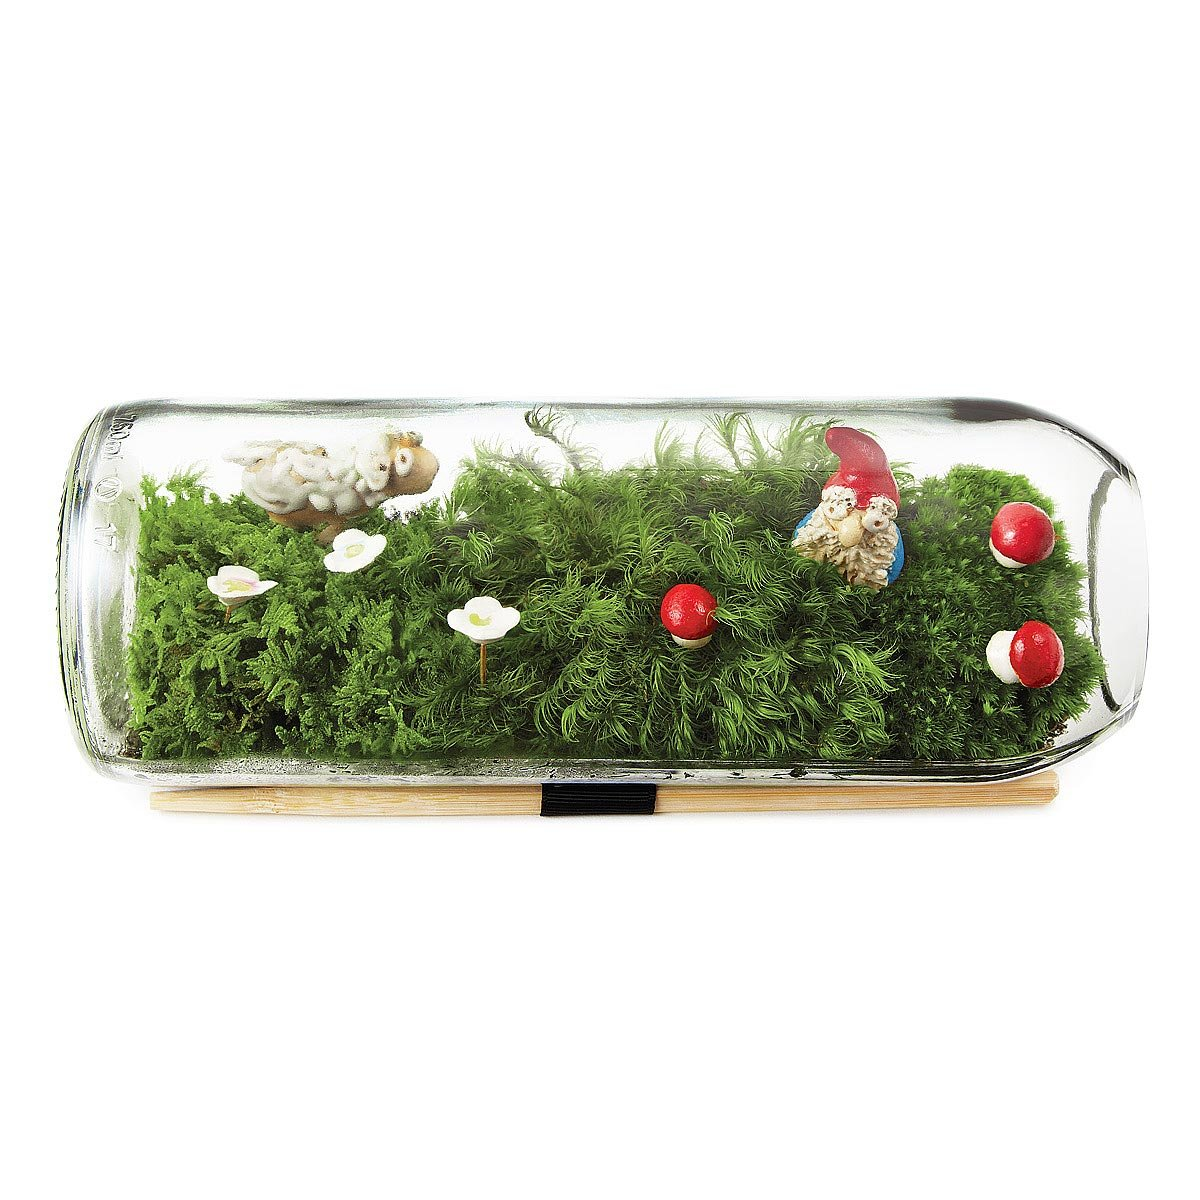 worksheet Terarium moss terrarium bottle glass gift uncommongoods 3 thumbnail